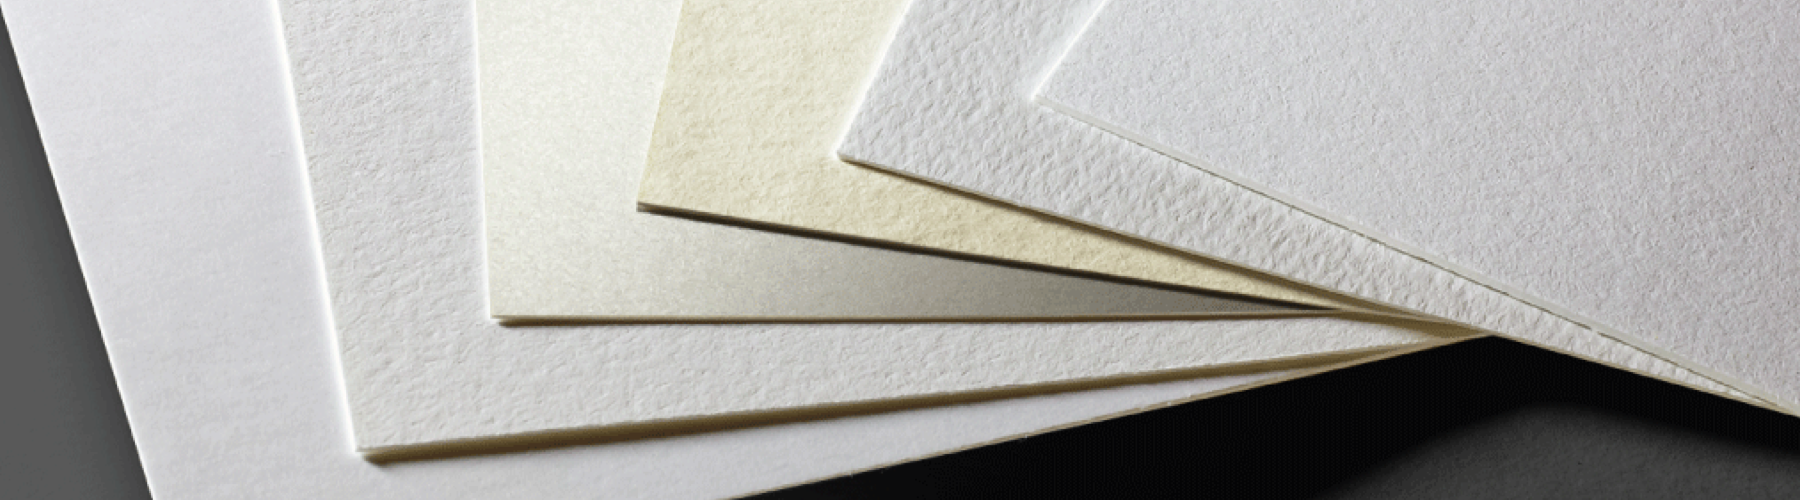 How To Know Which Paper Type Suits Your Business Best